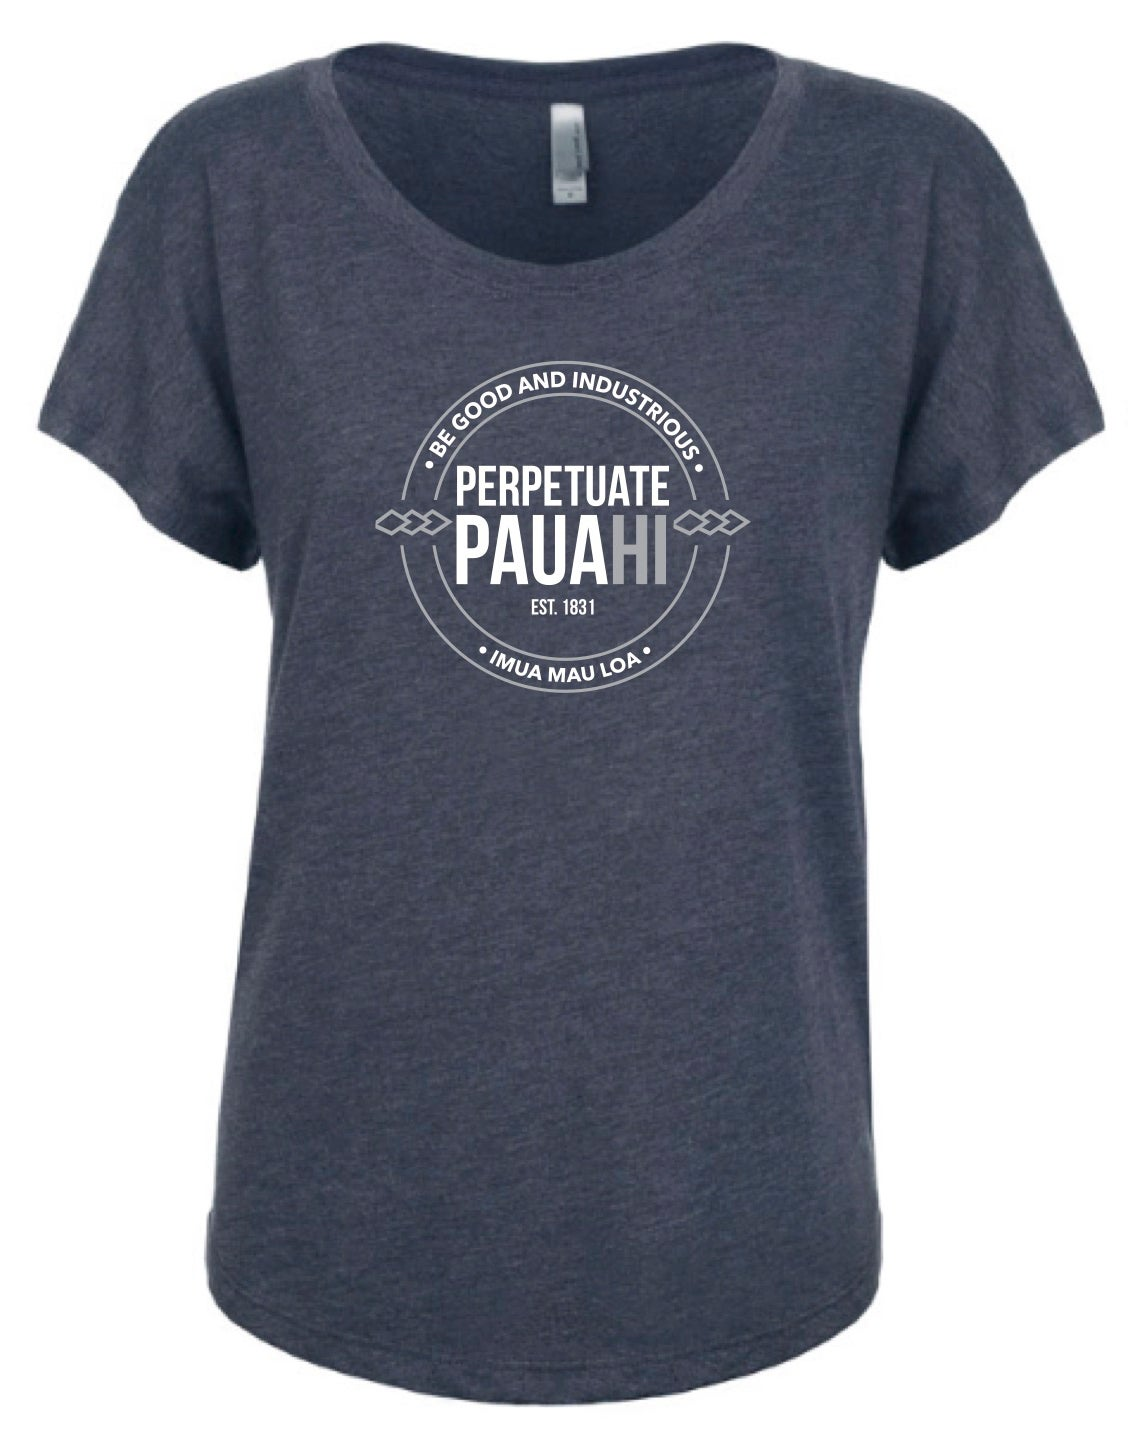 Image of Perpetuate Pauahi Women's (Vintage Blue) Shirt